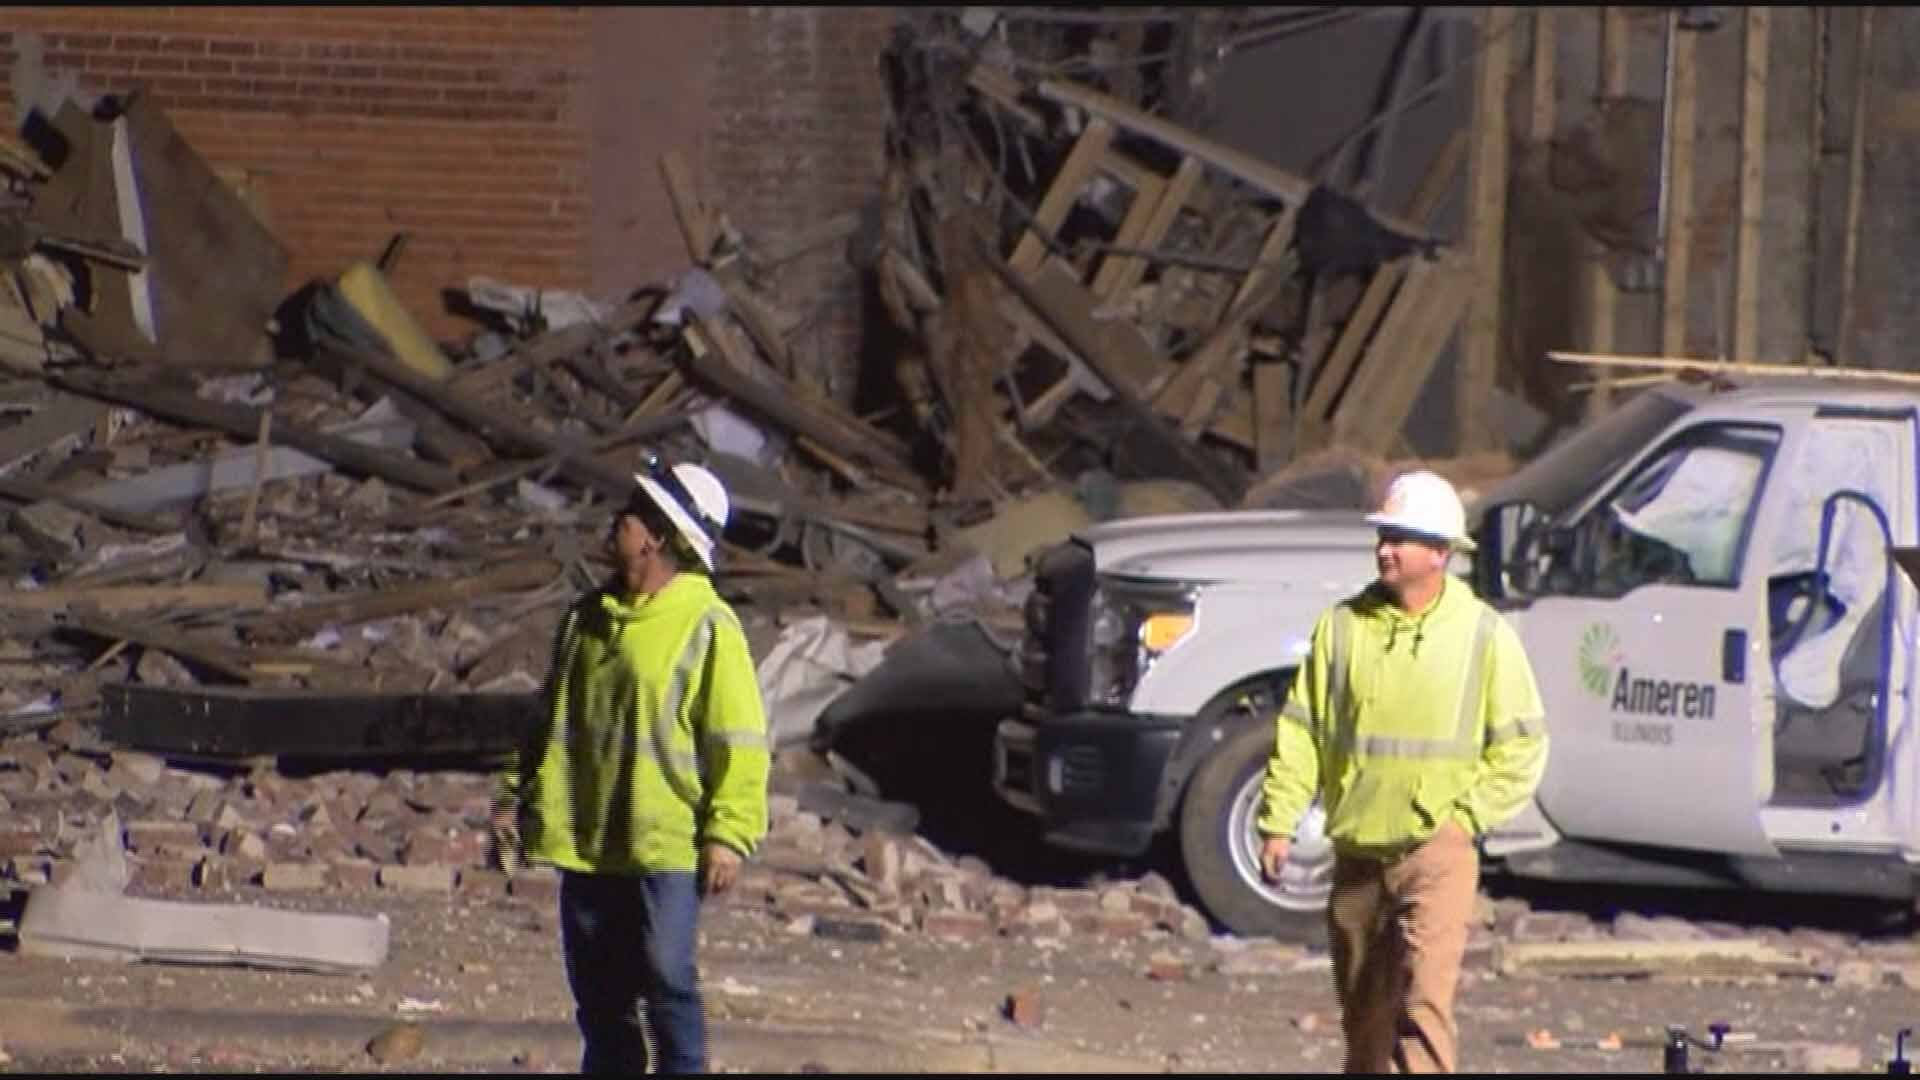 One person died after an explosion in Canton, Illinois. Credit: KMOV